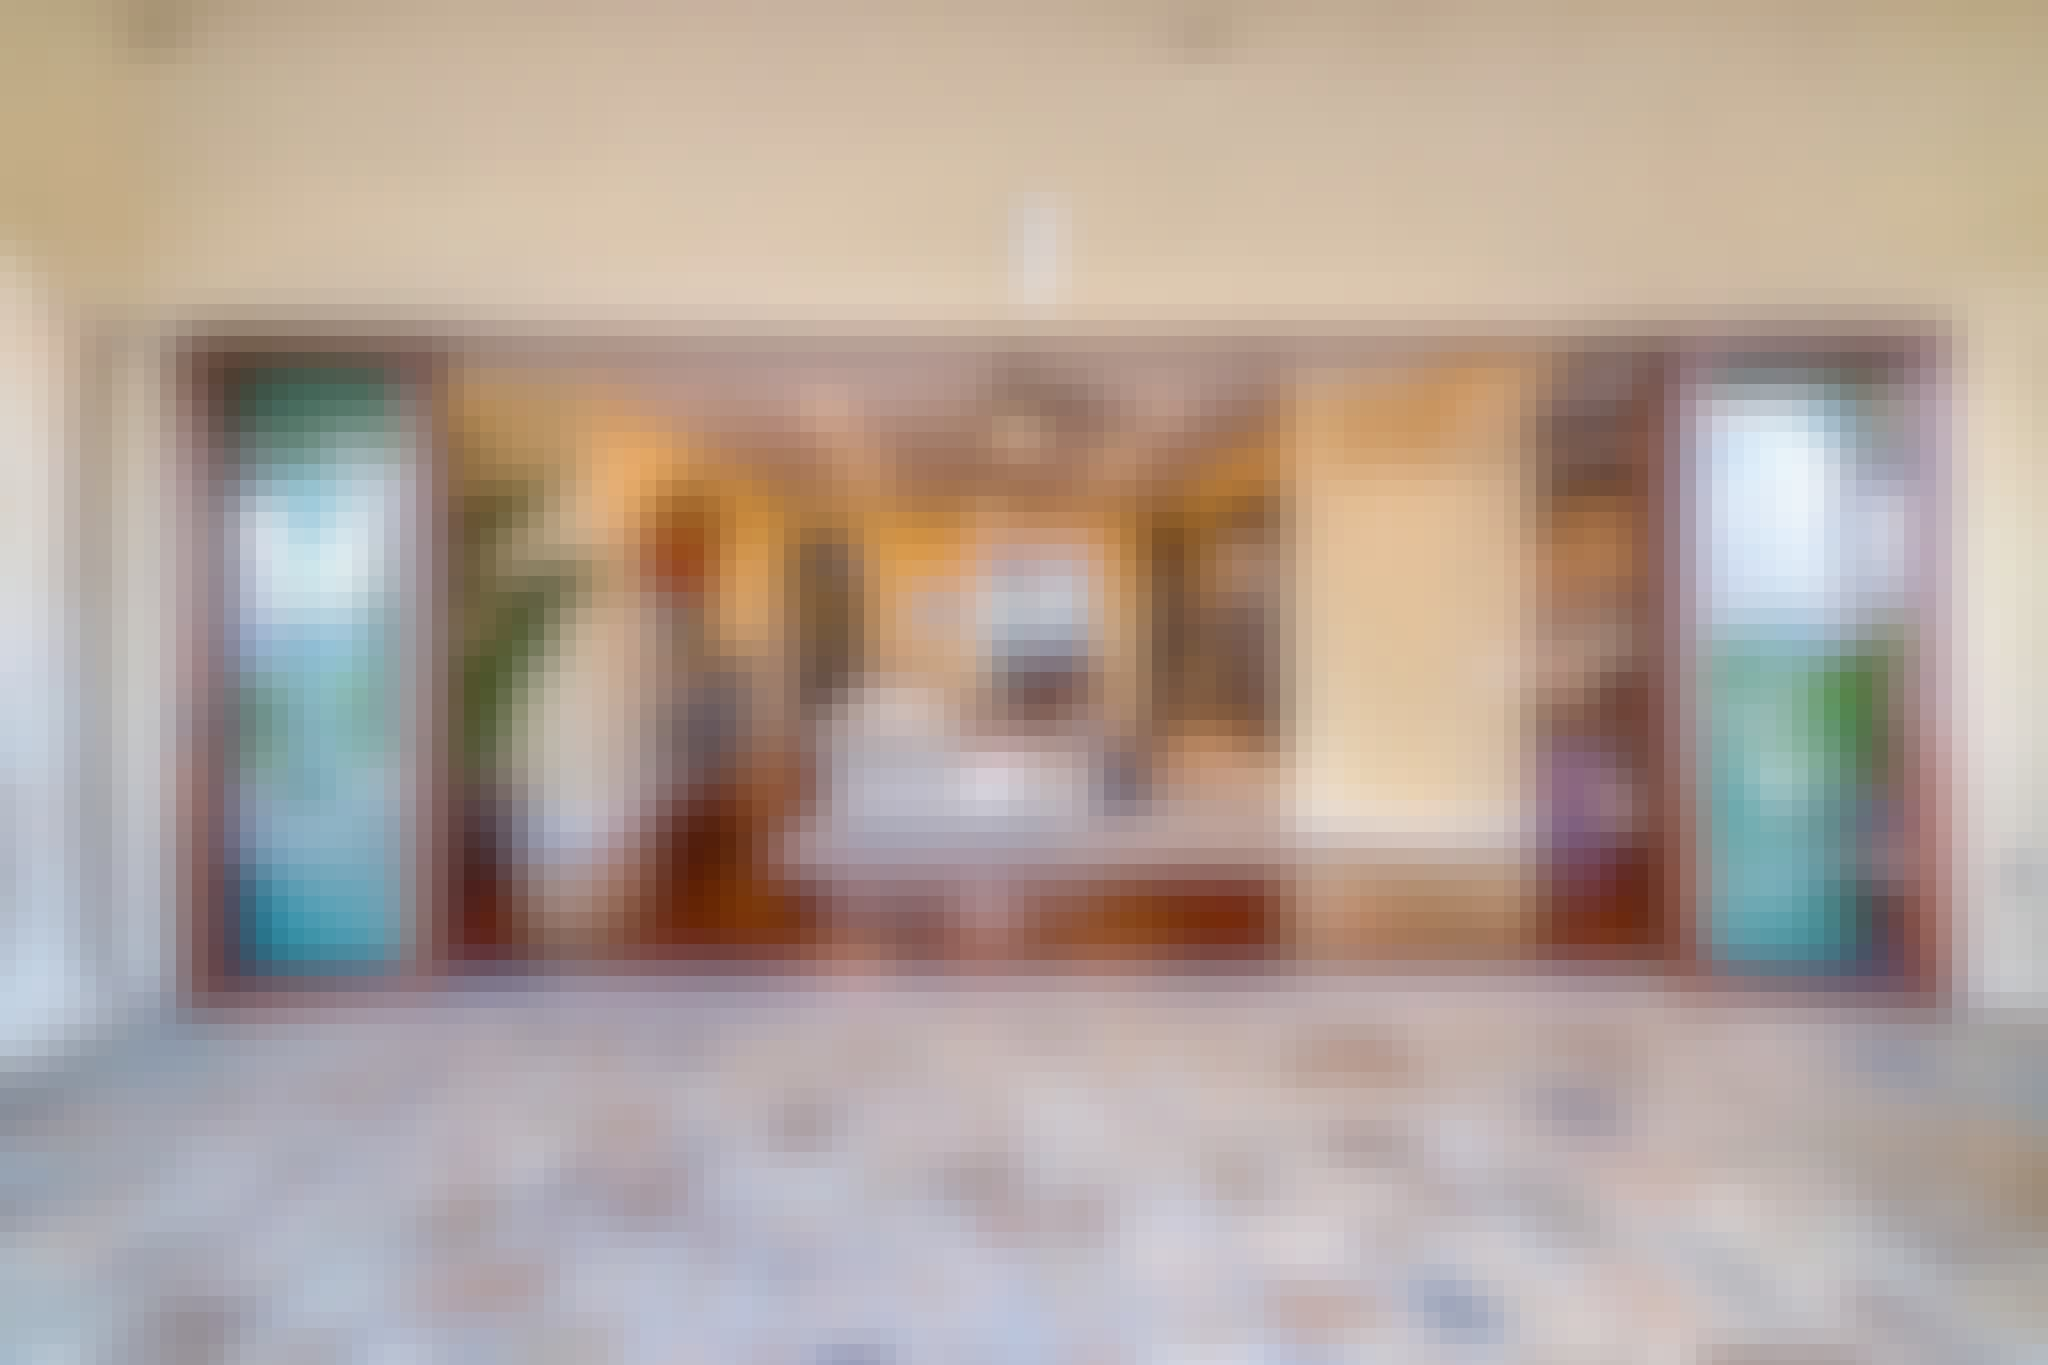 moveable glass door systems that foldflat